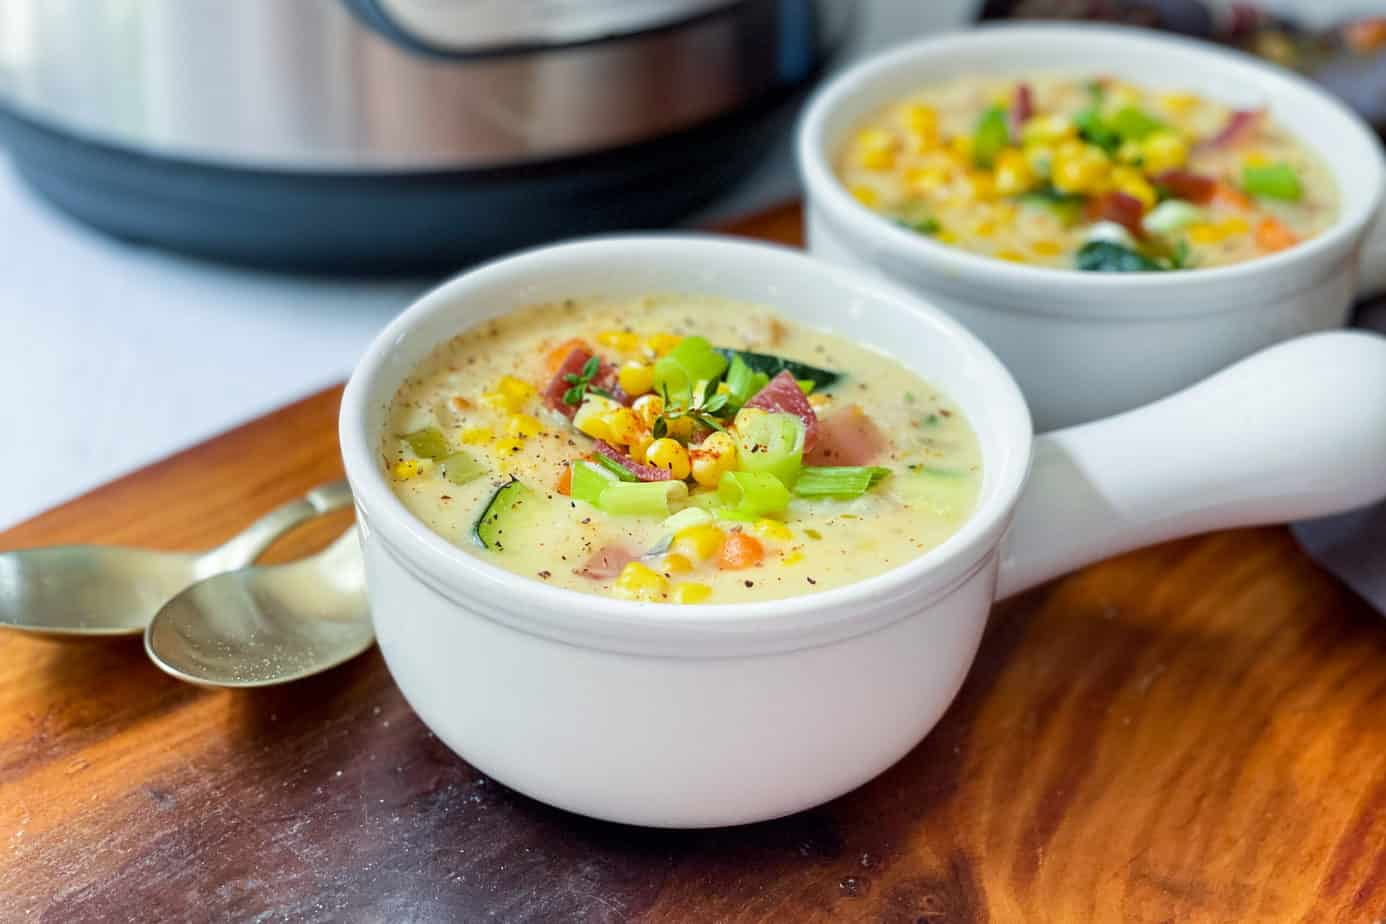 Two bowls of Zucchini Corn Chowder in soup bowls with handles